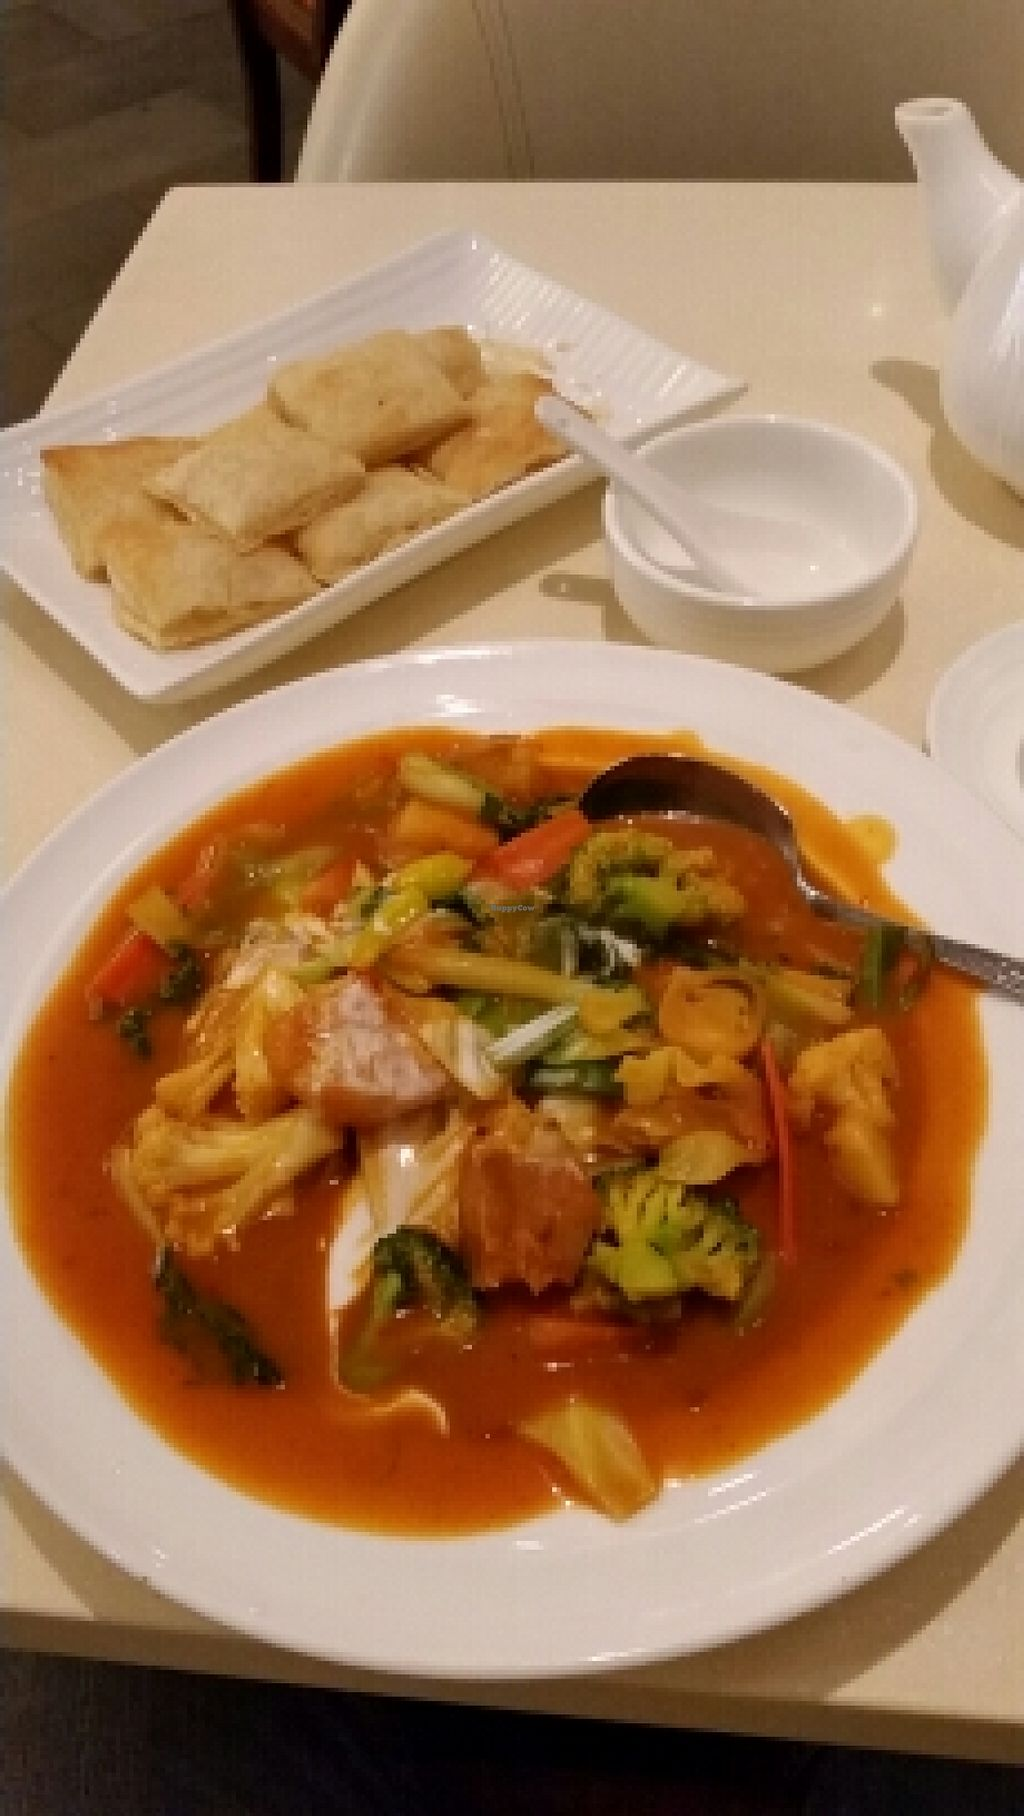 "Photo of Gaia Veggie Shop - Miramar Shopping Centre  by <a href=""/members/profile/Veggiesgood"">Veggiesgood</a> <br/>Veggies in curry sauce <br/> February 23, 2016  - <a href='/contact/abuse/image/25700/137490'>Report</a>"